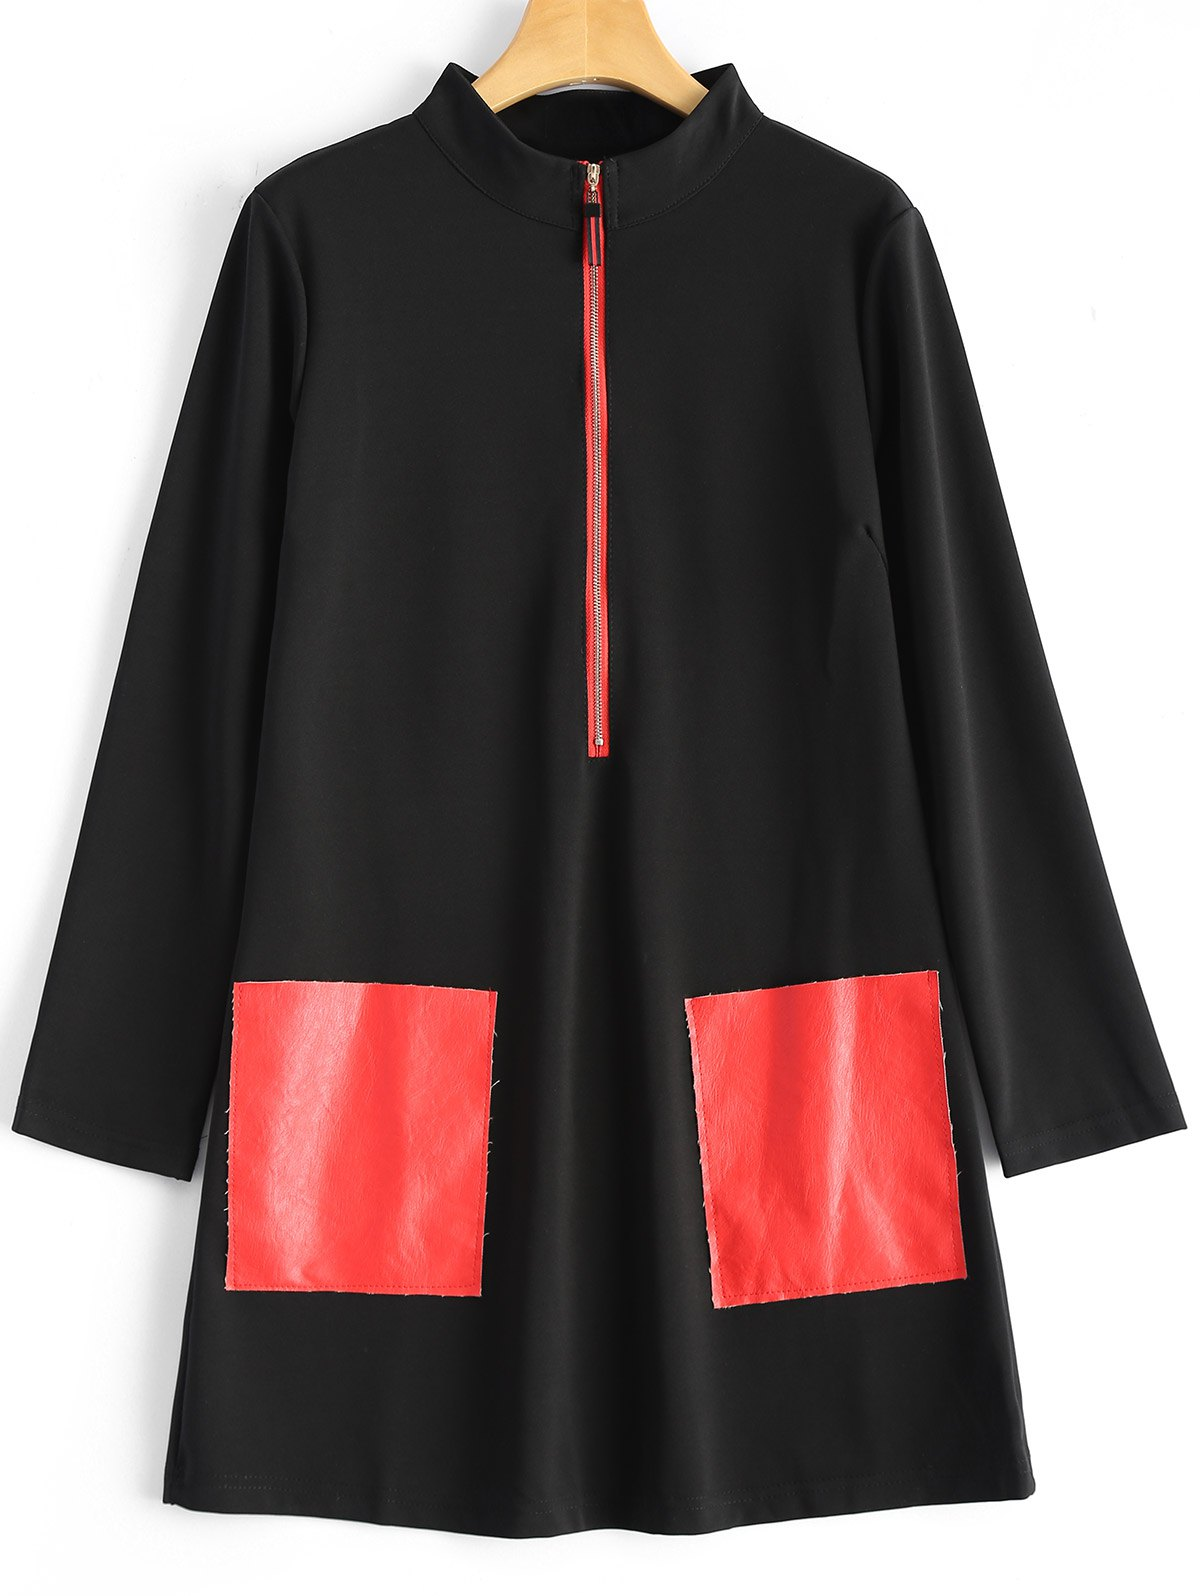 Stand Neck PU Leather Pockets Patched Coat